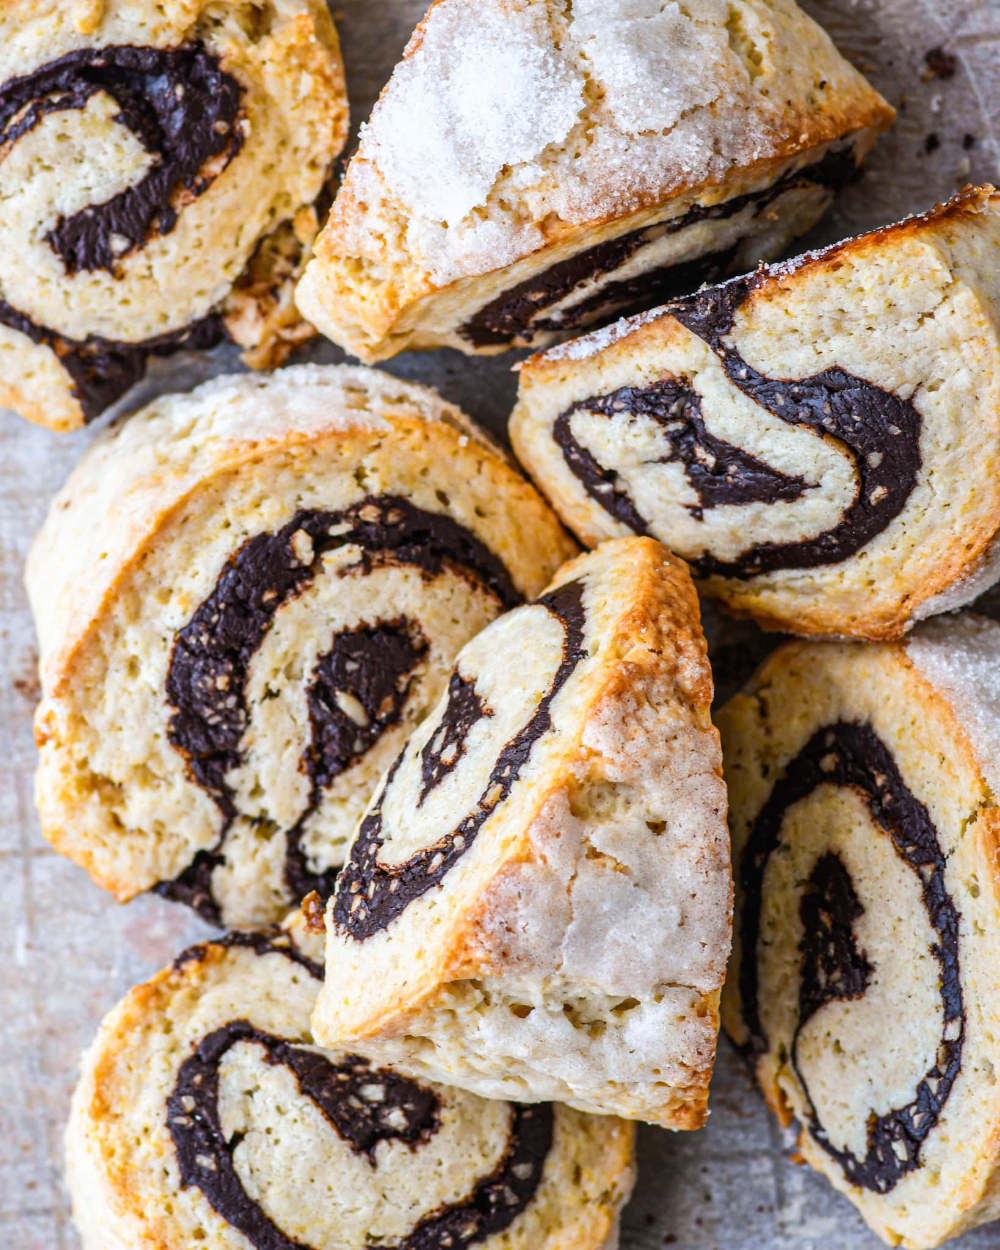 Babka Style Scones Chocolate Hazelnut Buttermilk By Sam Recipe In 2020 Chocolate Hazelnut Scones Nyt Cooking